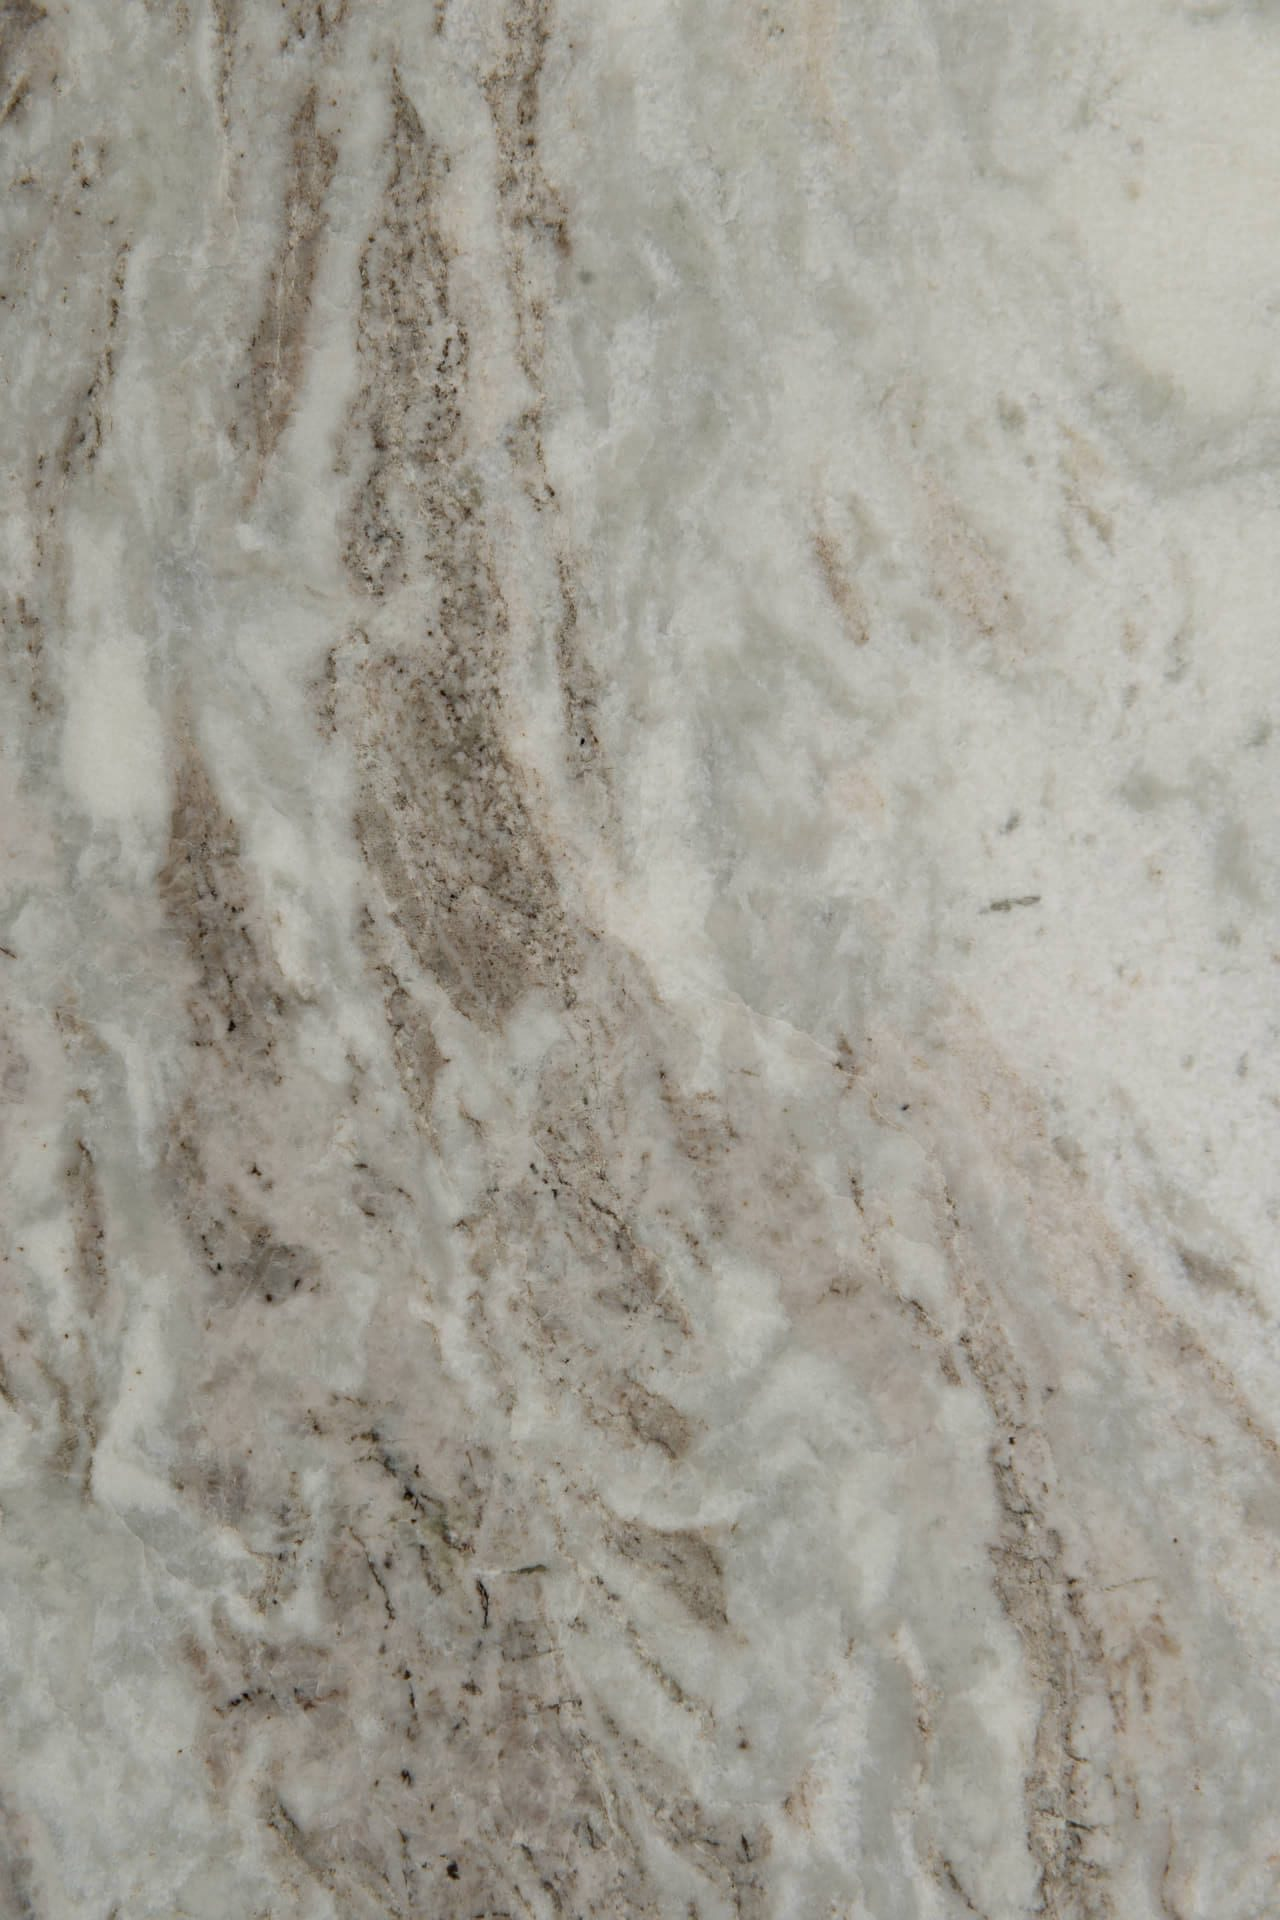 fantasy brown 1156 cu countertop - by Magnolia Countertops. A Countertop fabricator of Granite Countertops, Marble Countertops, and Quartz Countertops in Cookeville and Crossville TN.